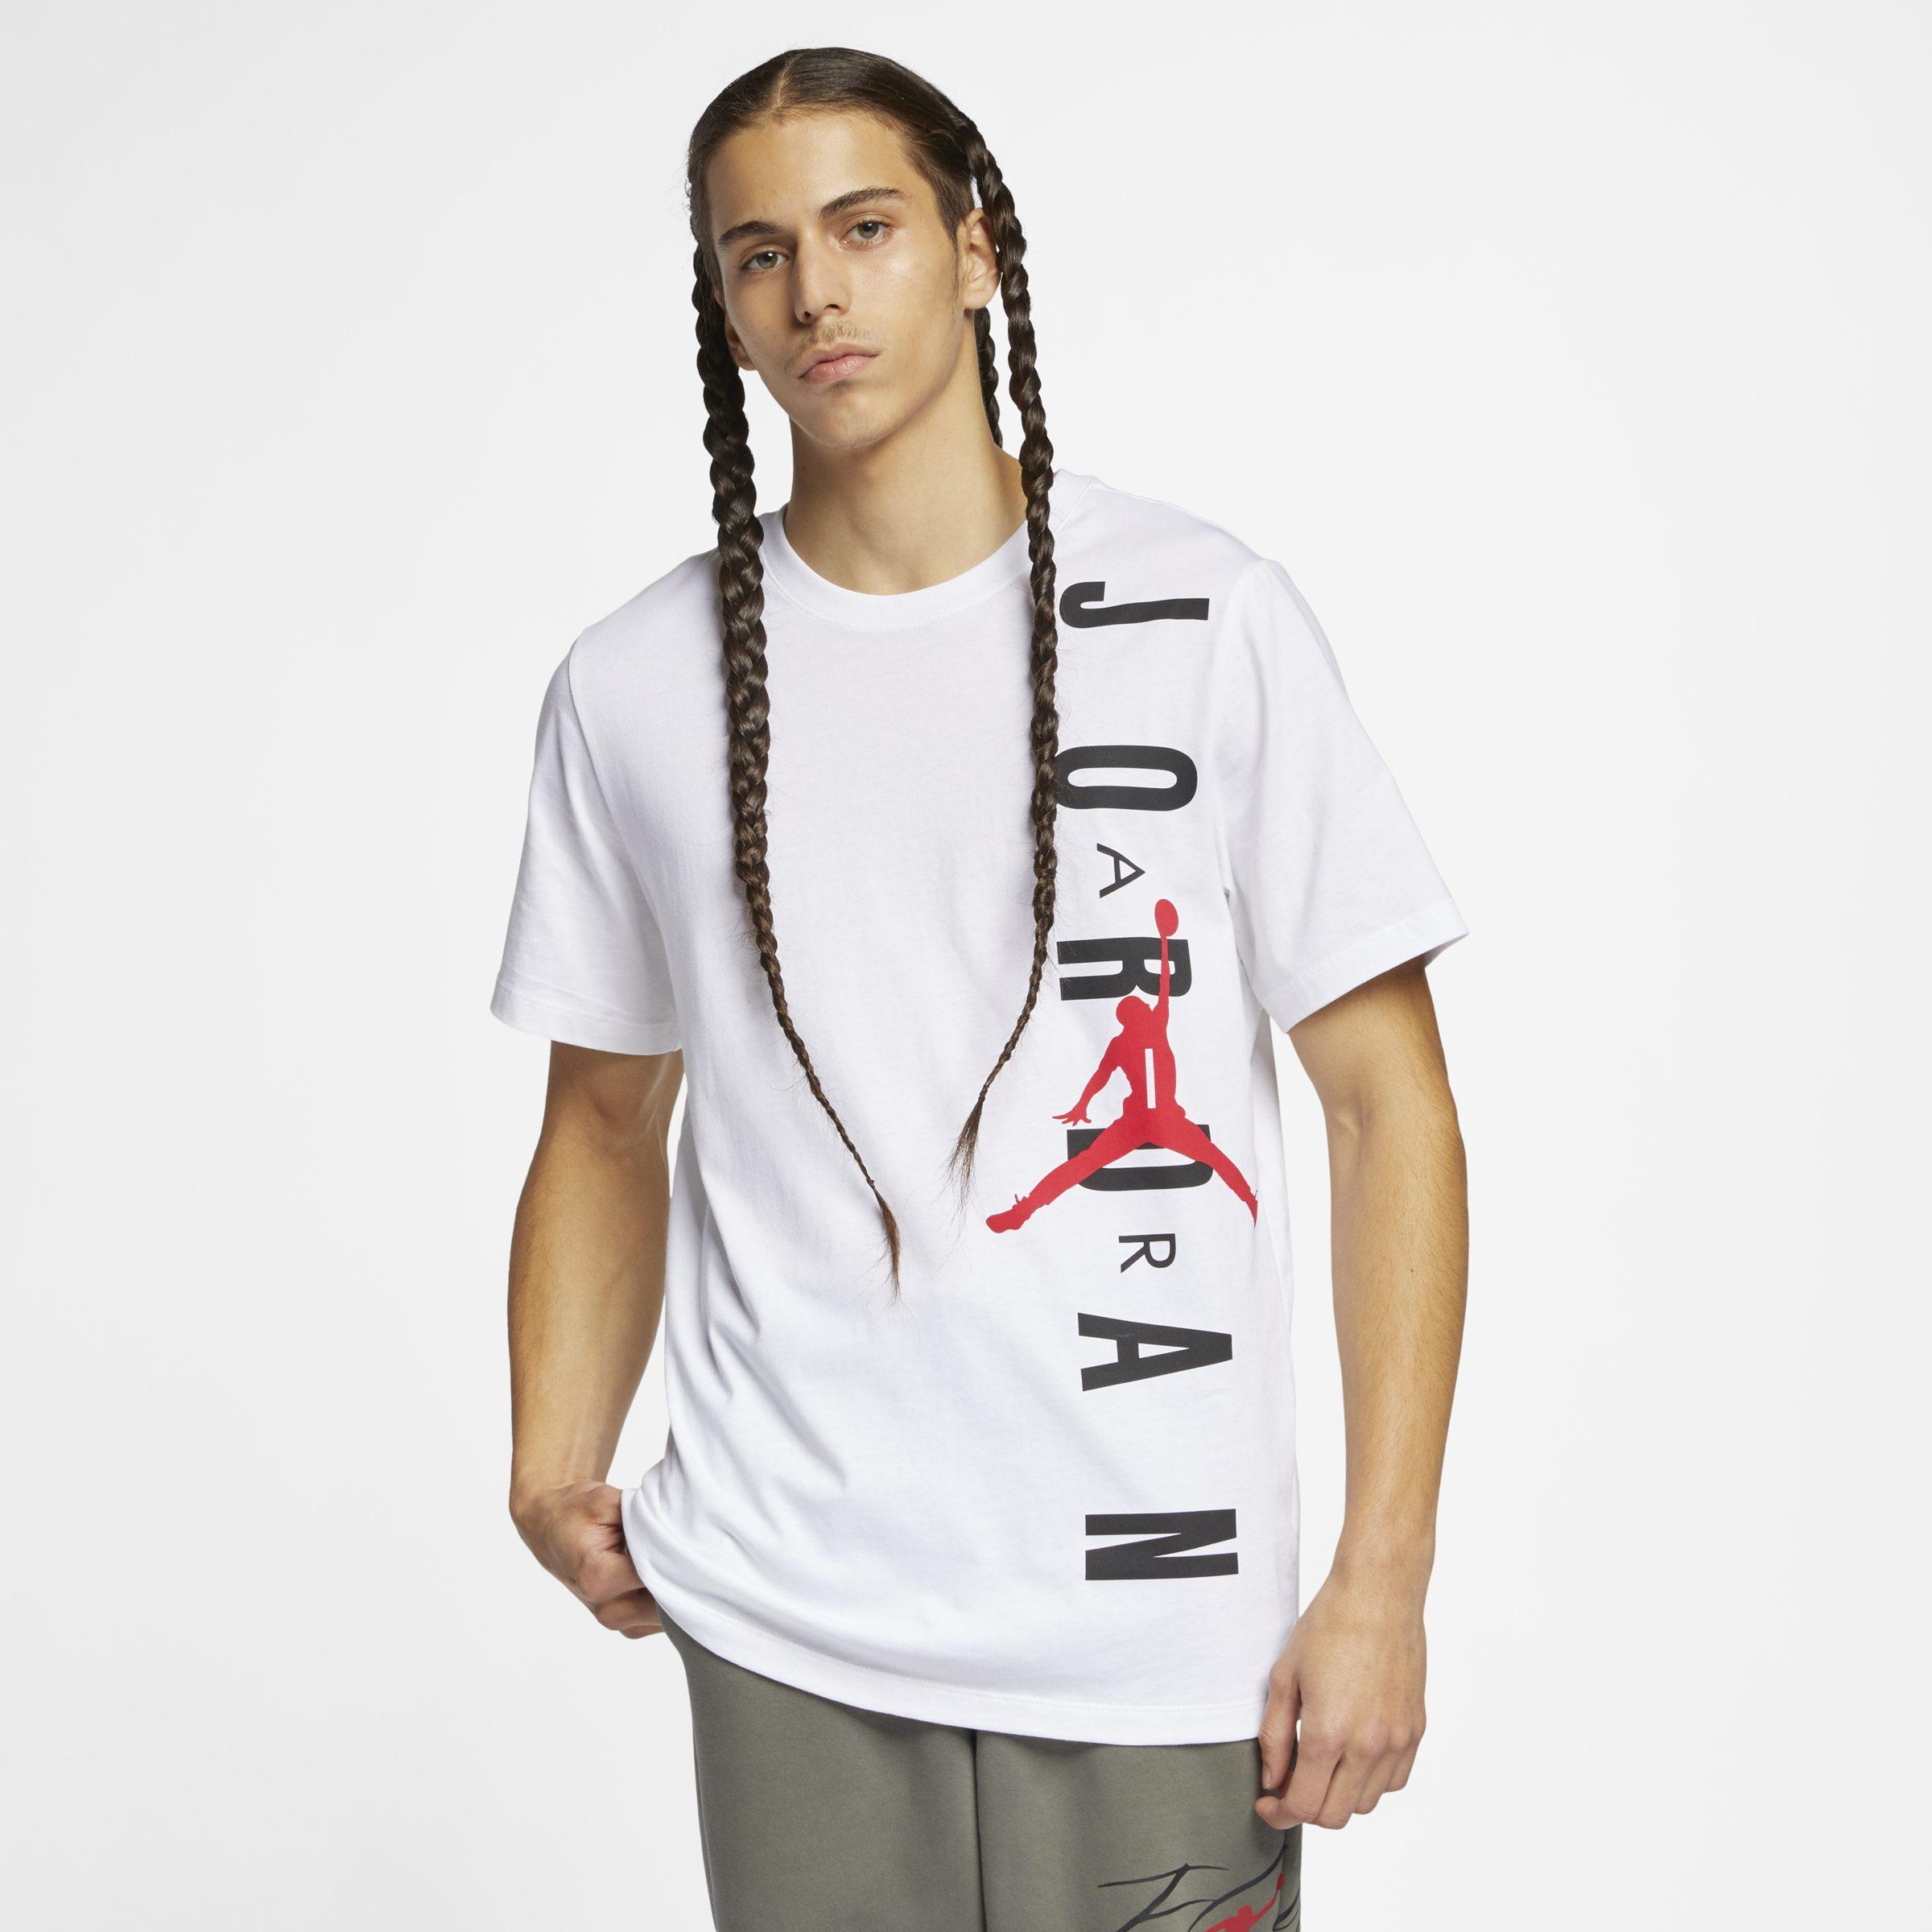 42fab5791c60 Nike Jordan Vertical T-shirt in White for Men - Lyst